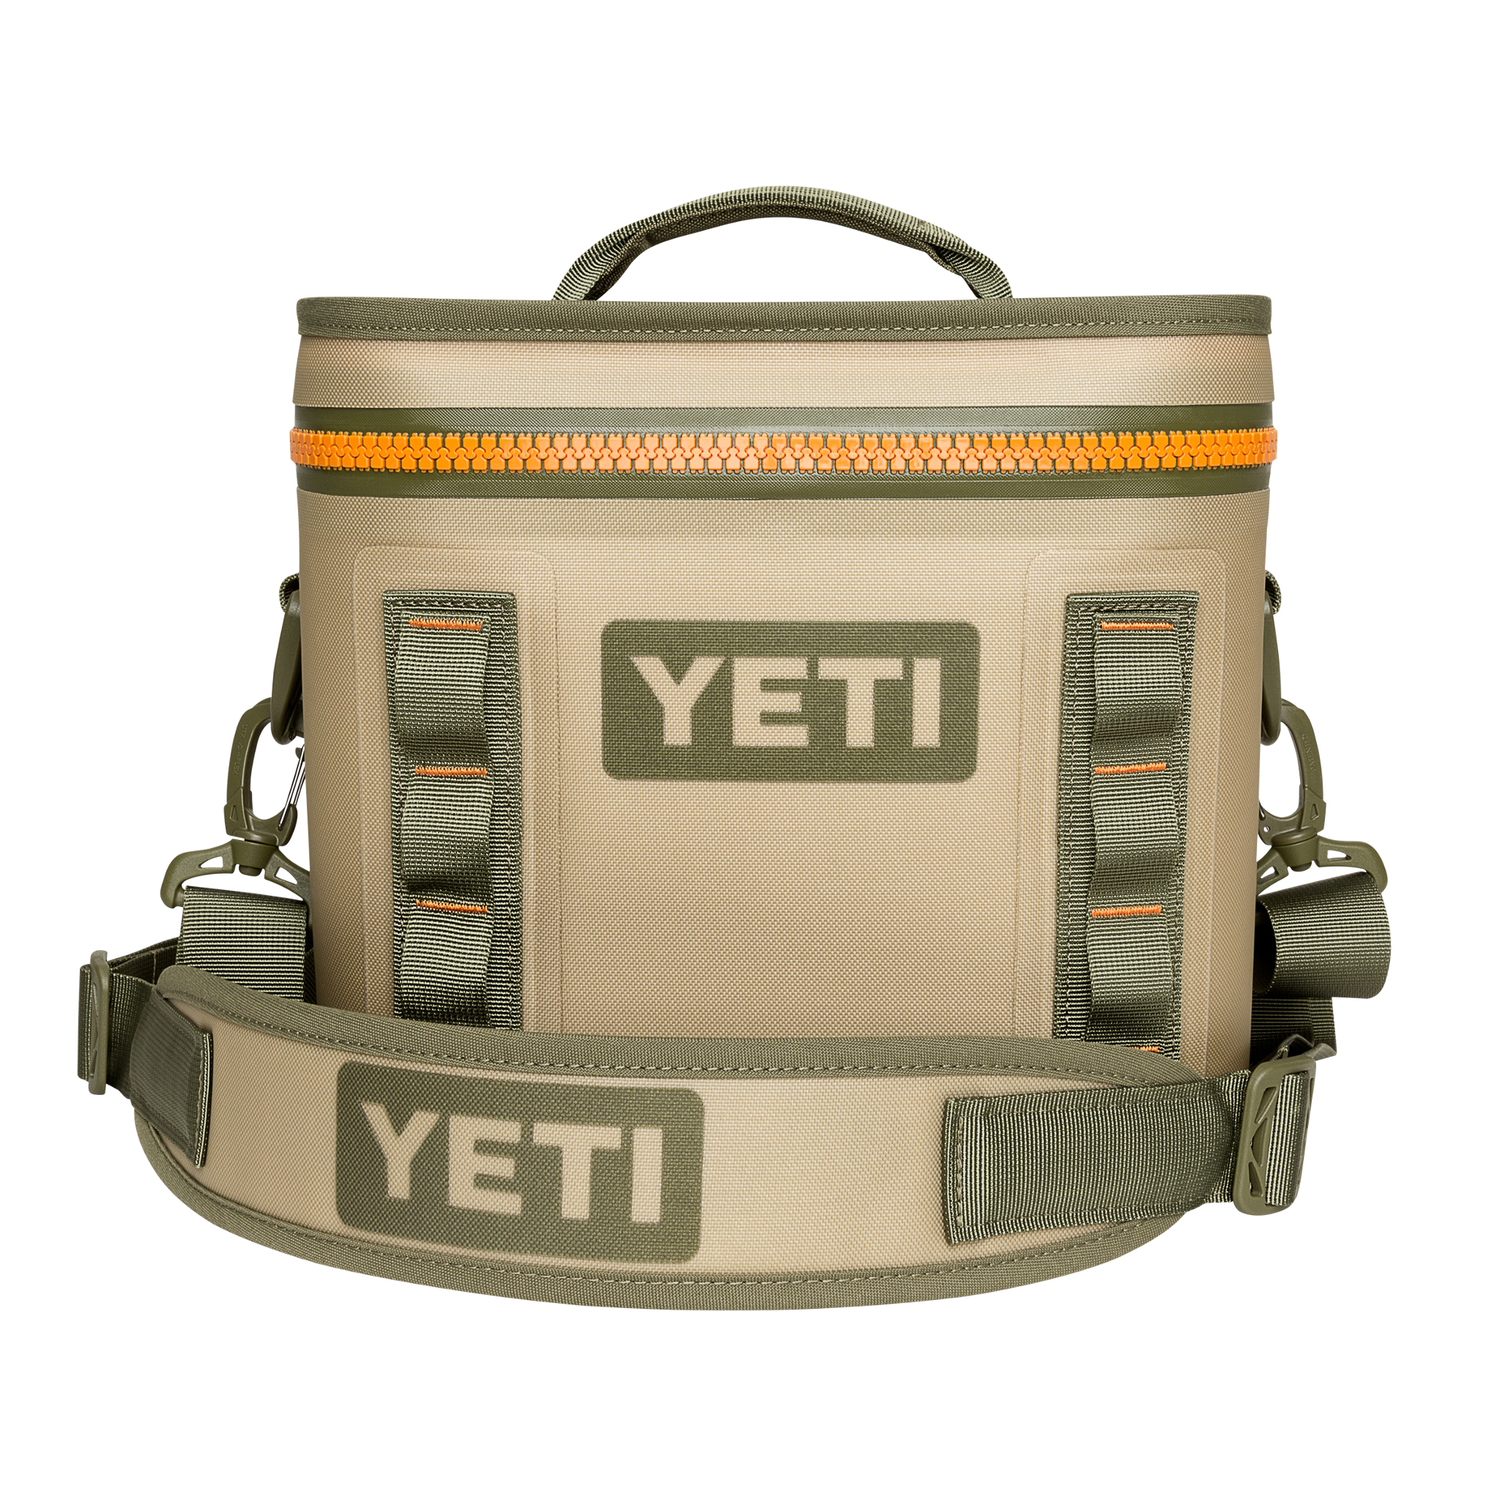 YETI  Hopper  Cooler  8  1 pk Tan